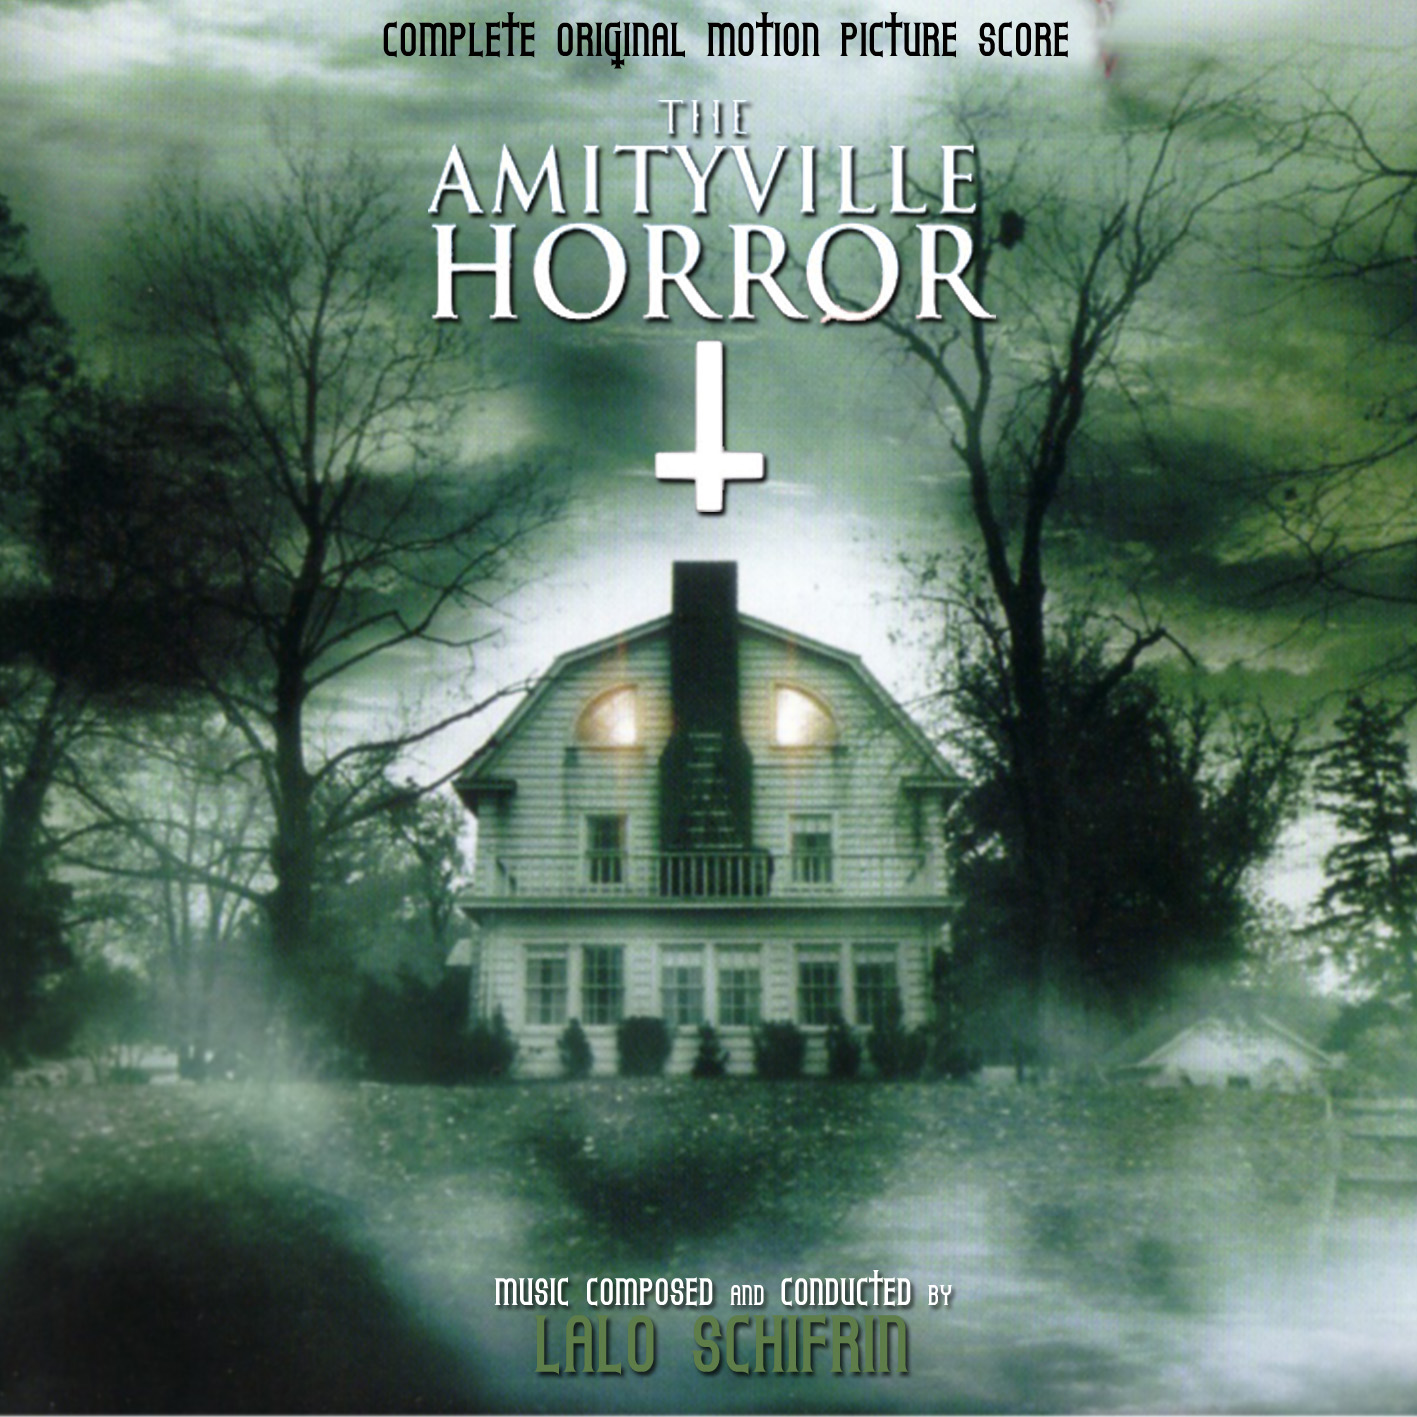 a literary analysis and a summary of the amityville horror It's as if the amityville horror had been written by thomas pynchon literary analysis: help and house of leaves: book summary & quotes related study materials.